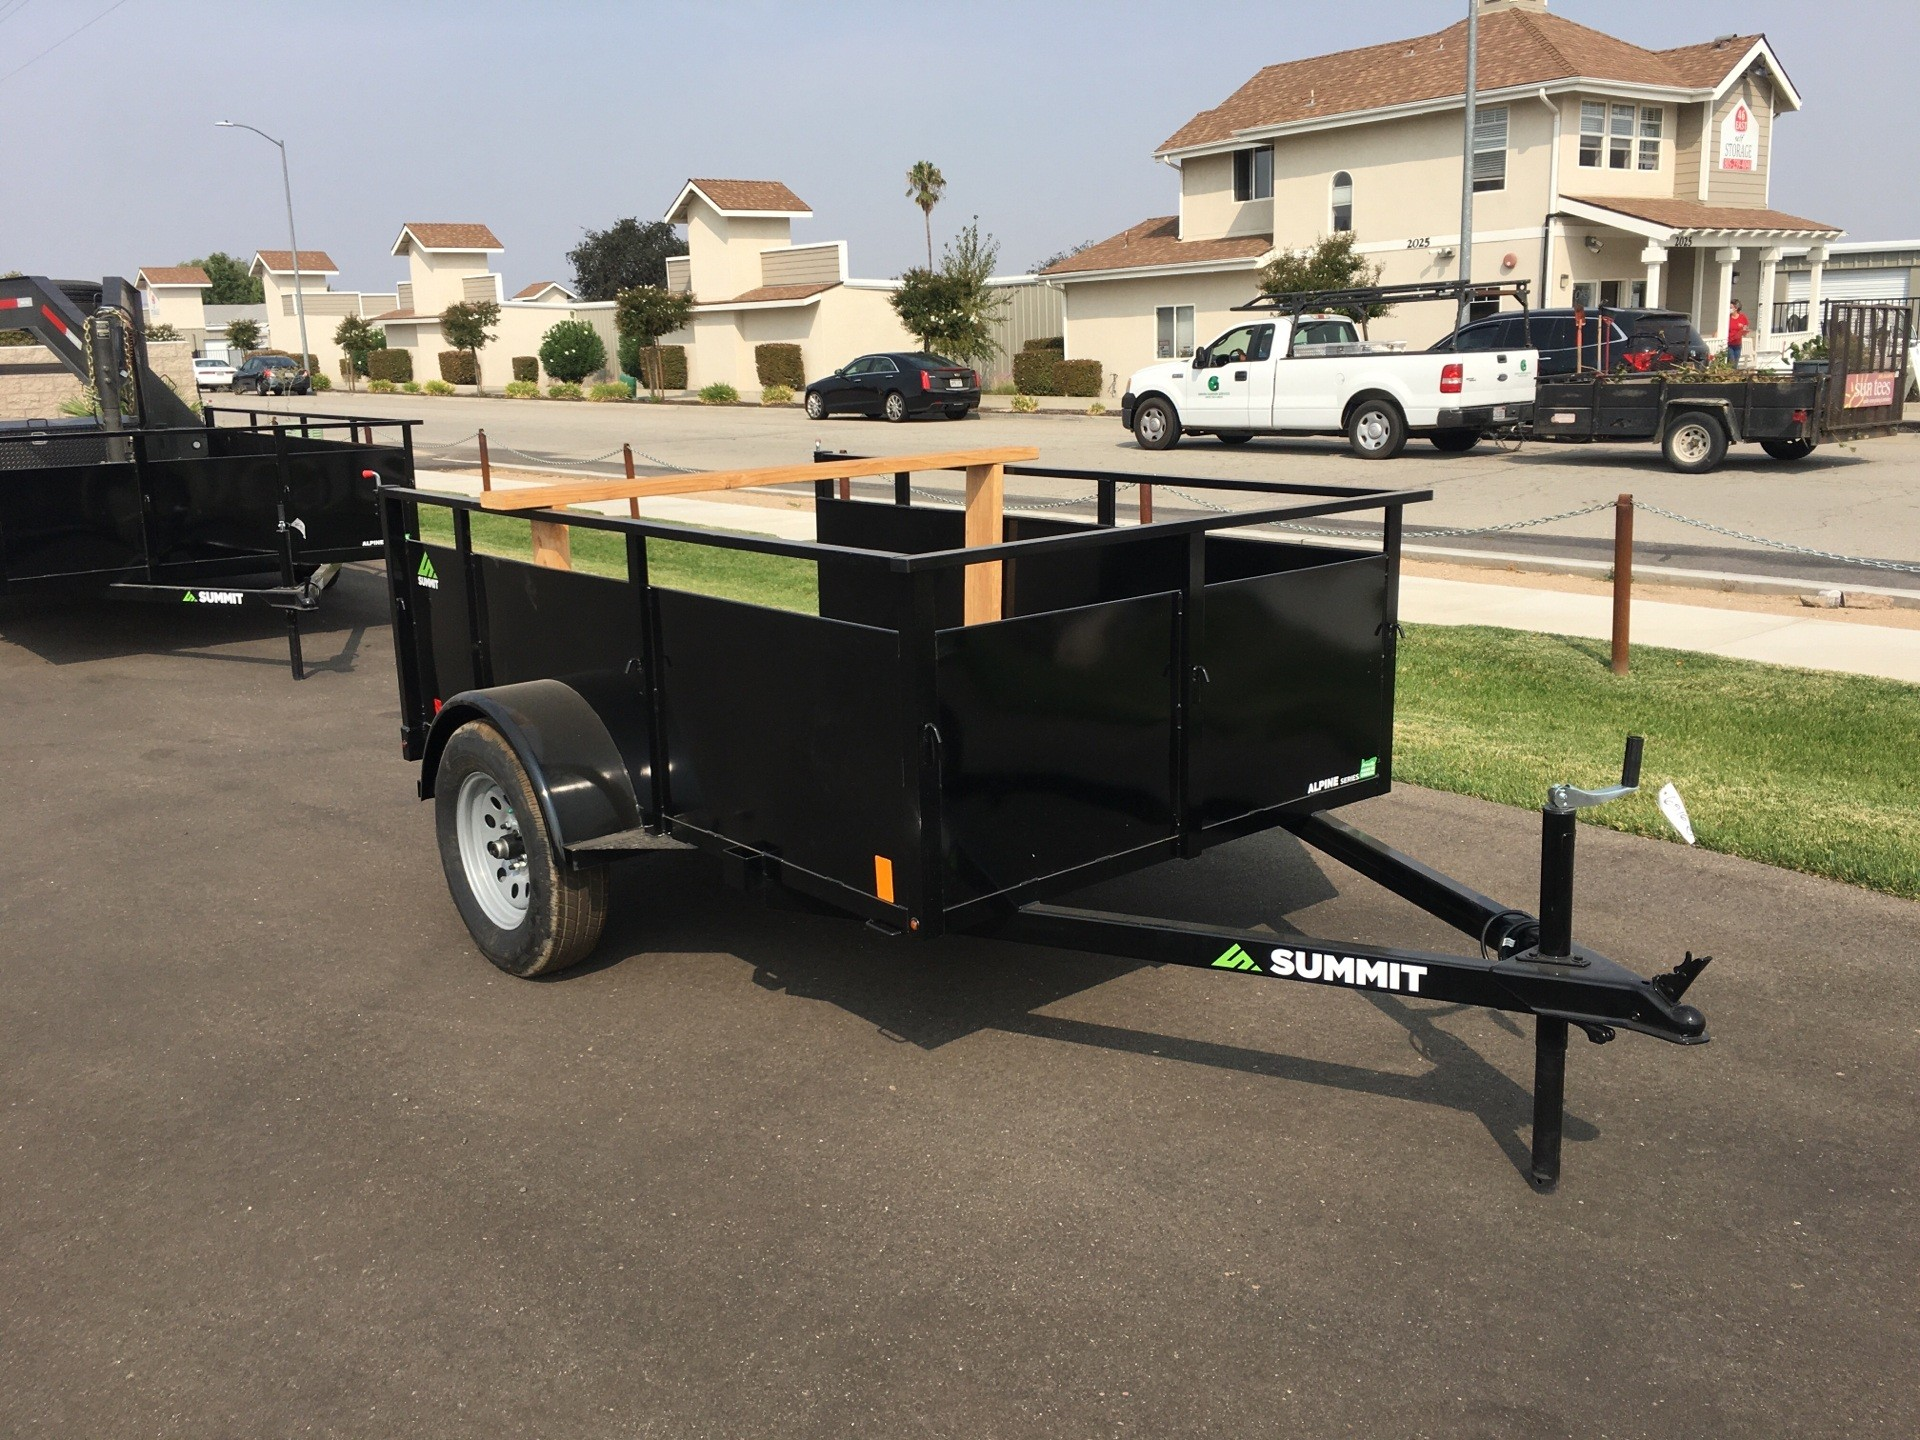 2021 SUMMIT TRAILER MFG  8' X 5' ALPINE SA UTILITY in Paso Robles, California - Photo 2